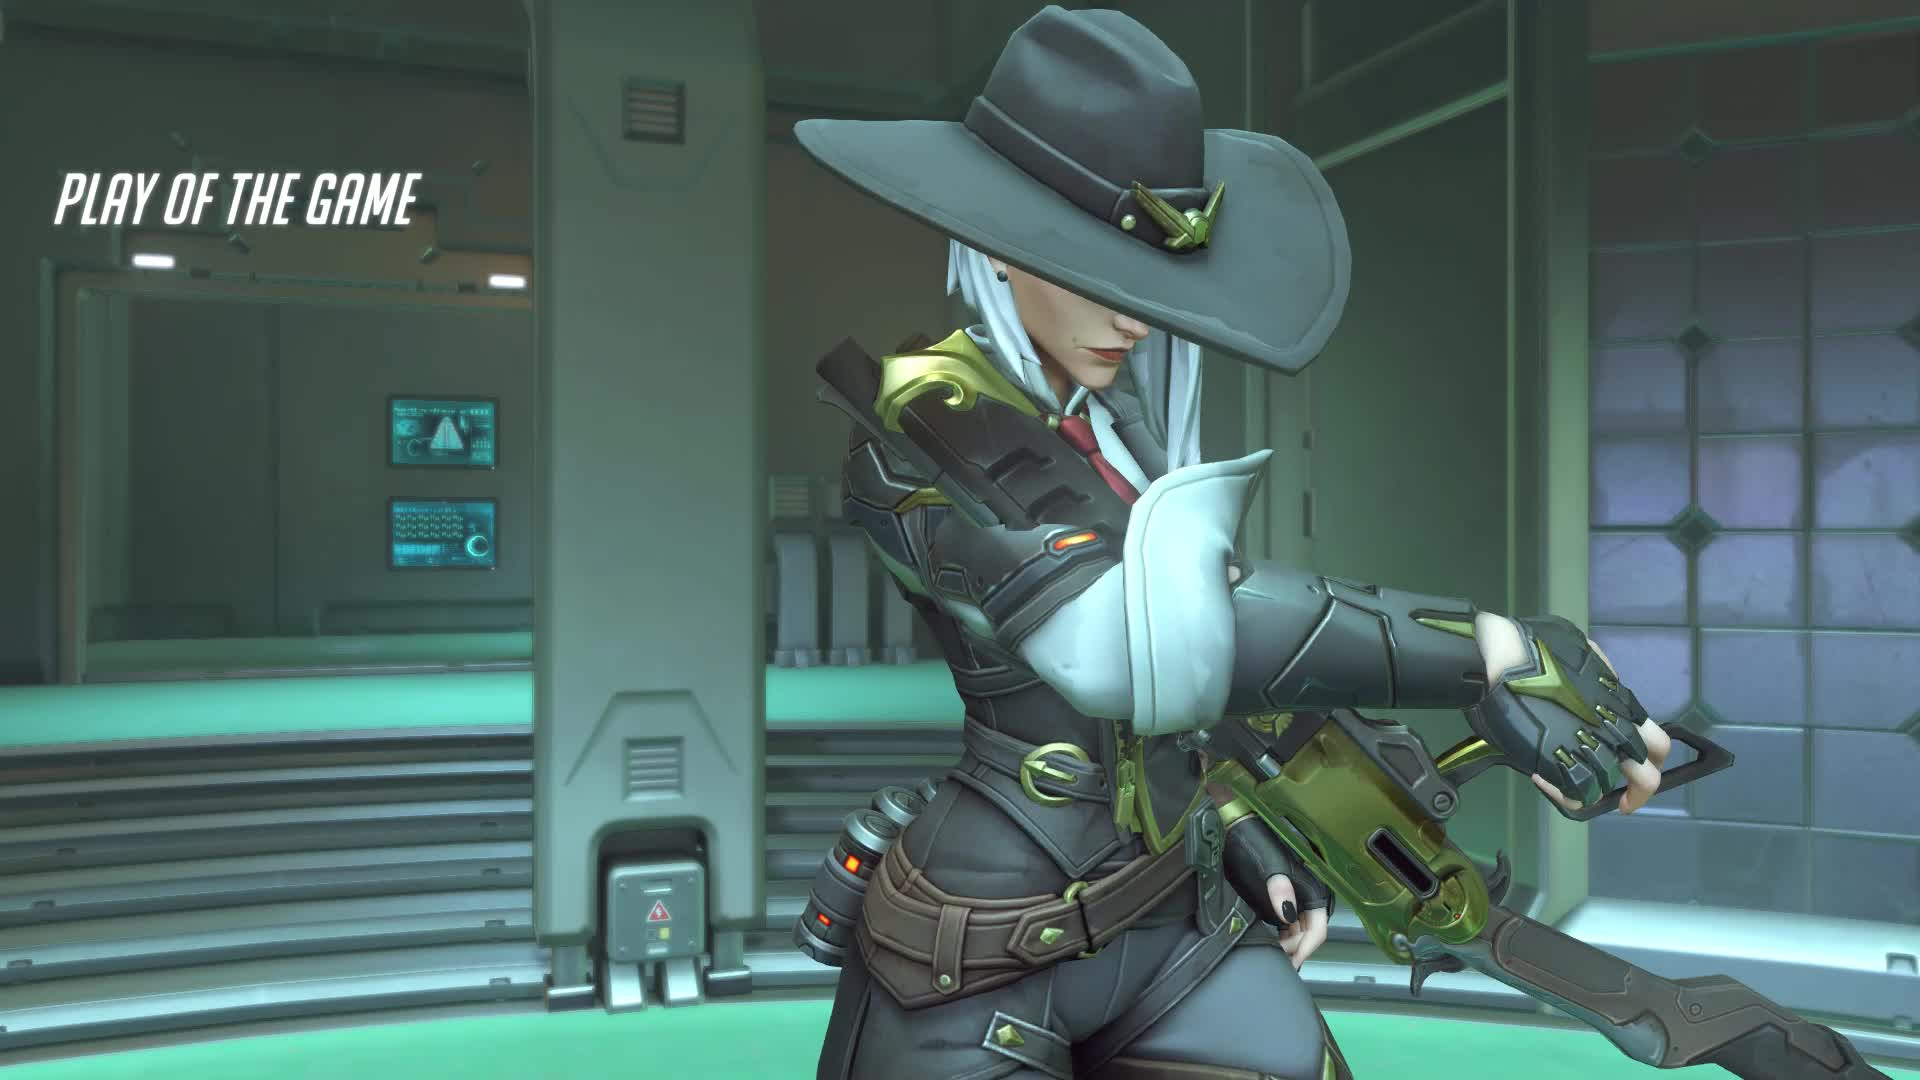 overwatch, potg, first ashe potg 18-11-14 22-09-33 GIFs